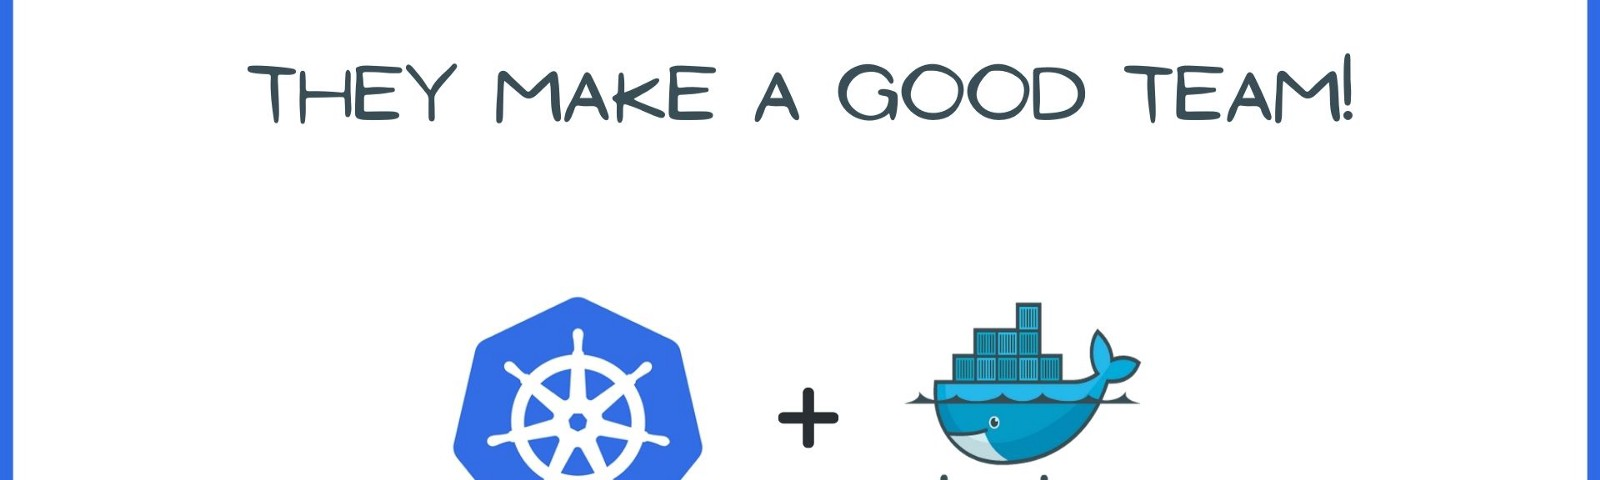 Kubernetes works well with Docker